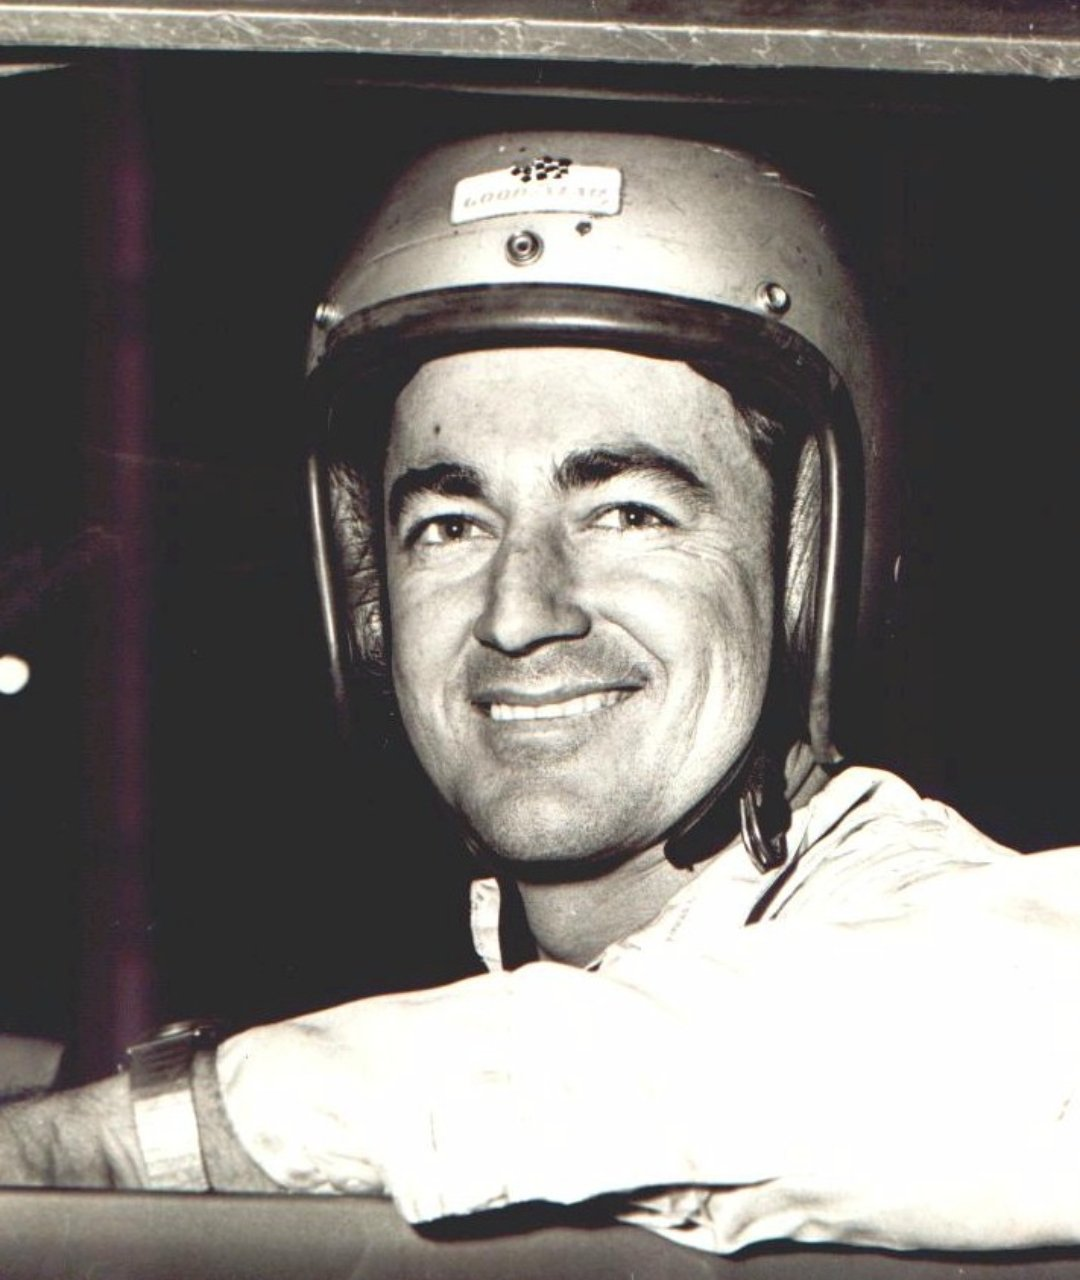 And a big Happy Birthday to a NASCAR Legend, Bobby Allison!